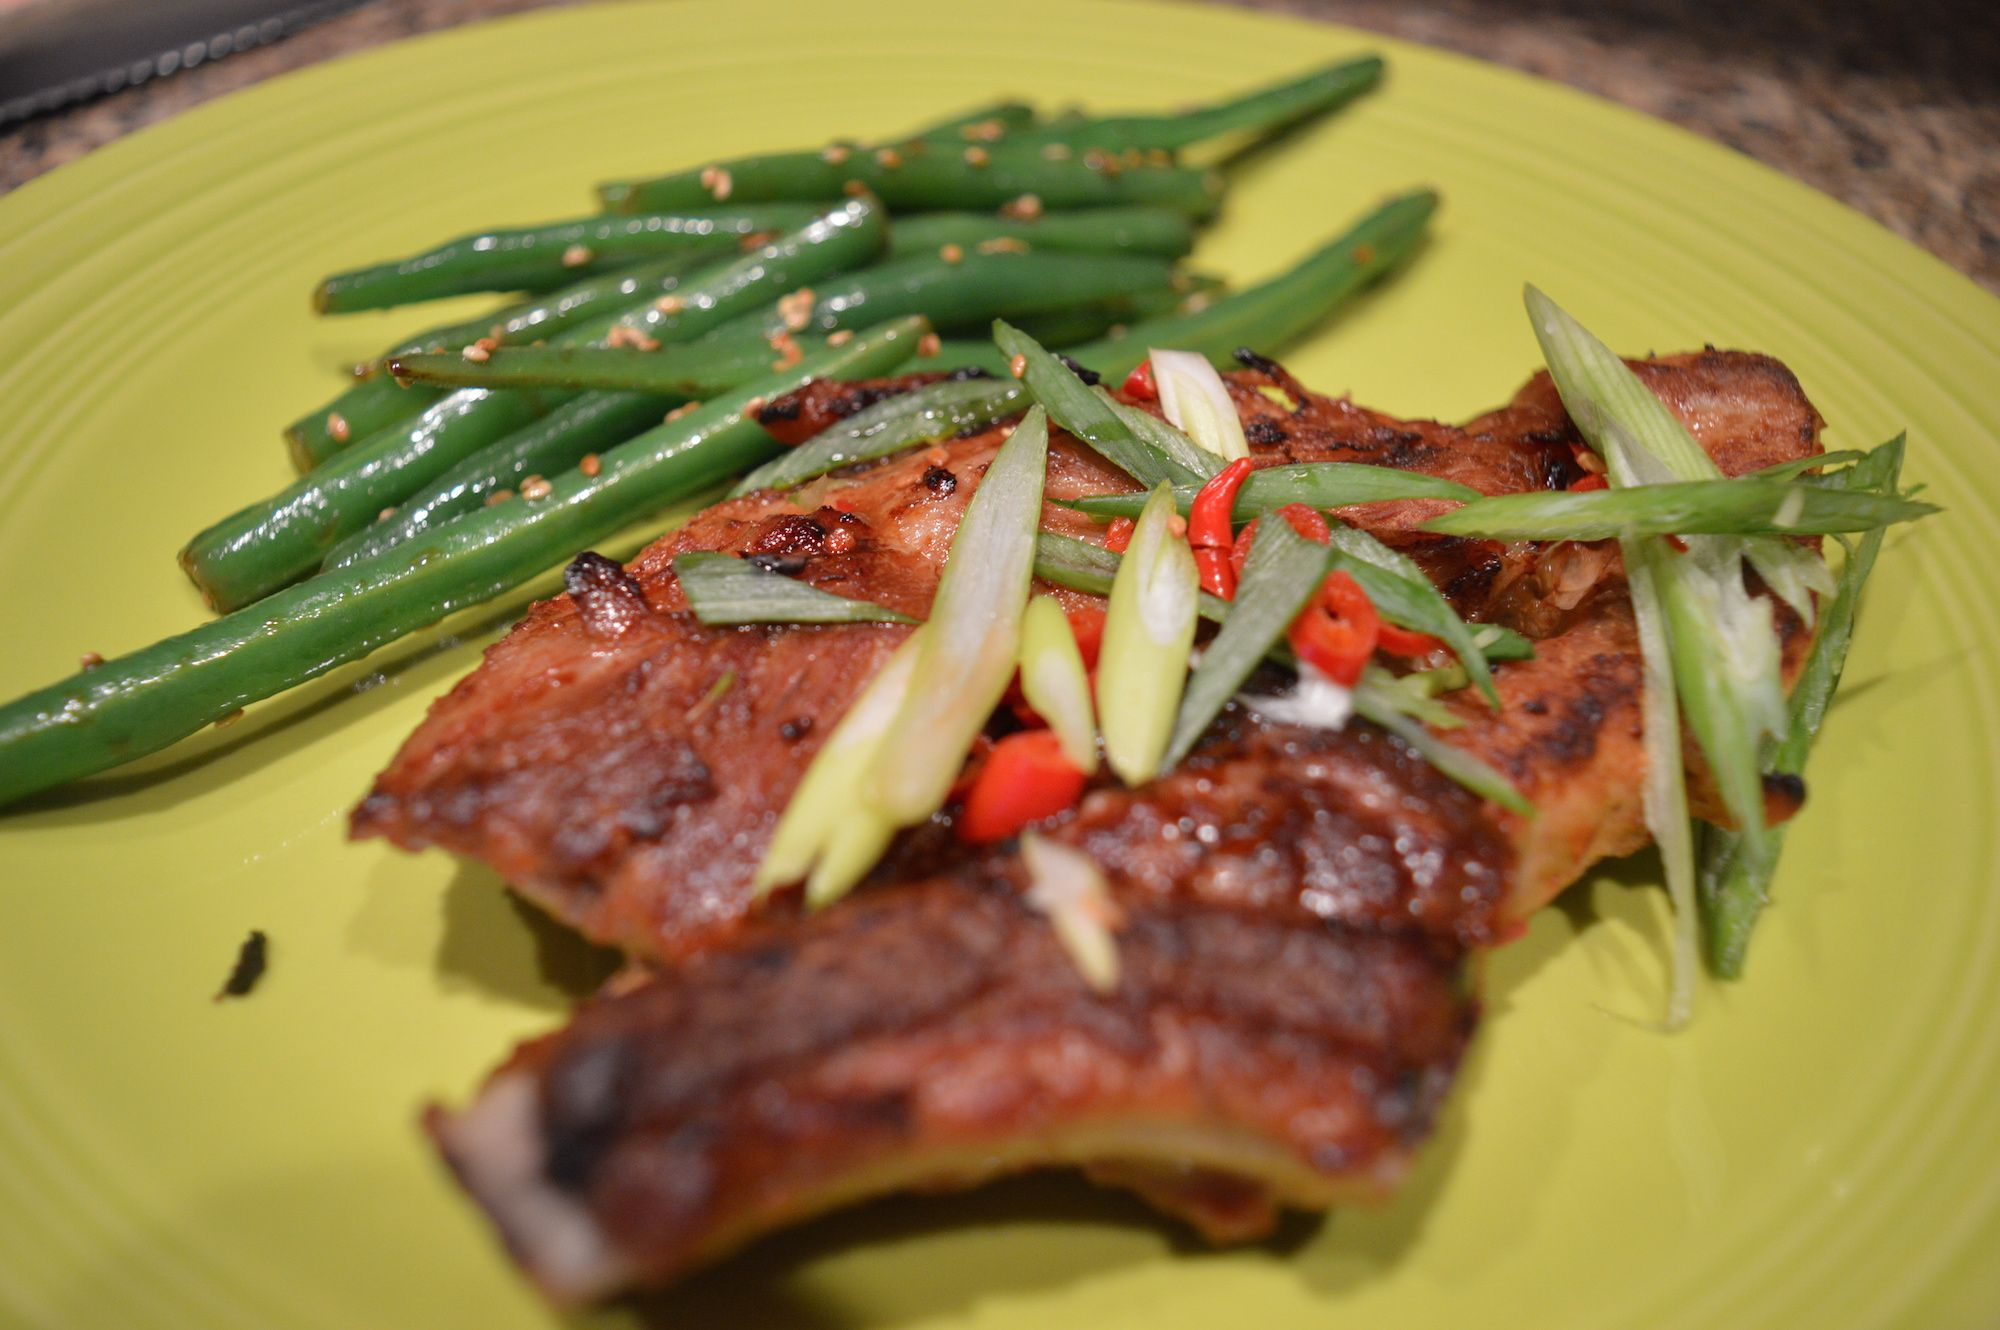 Slow-Roasted Asian Country-Style Pork Ribs with Soy-Ginger Green Beans | www.iatethewholething.com